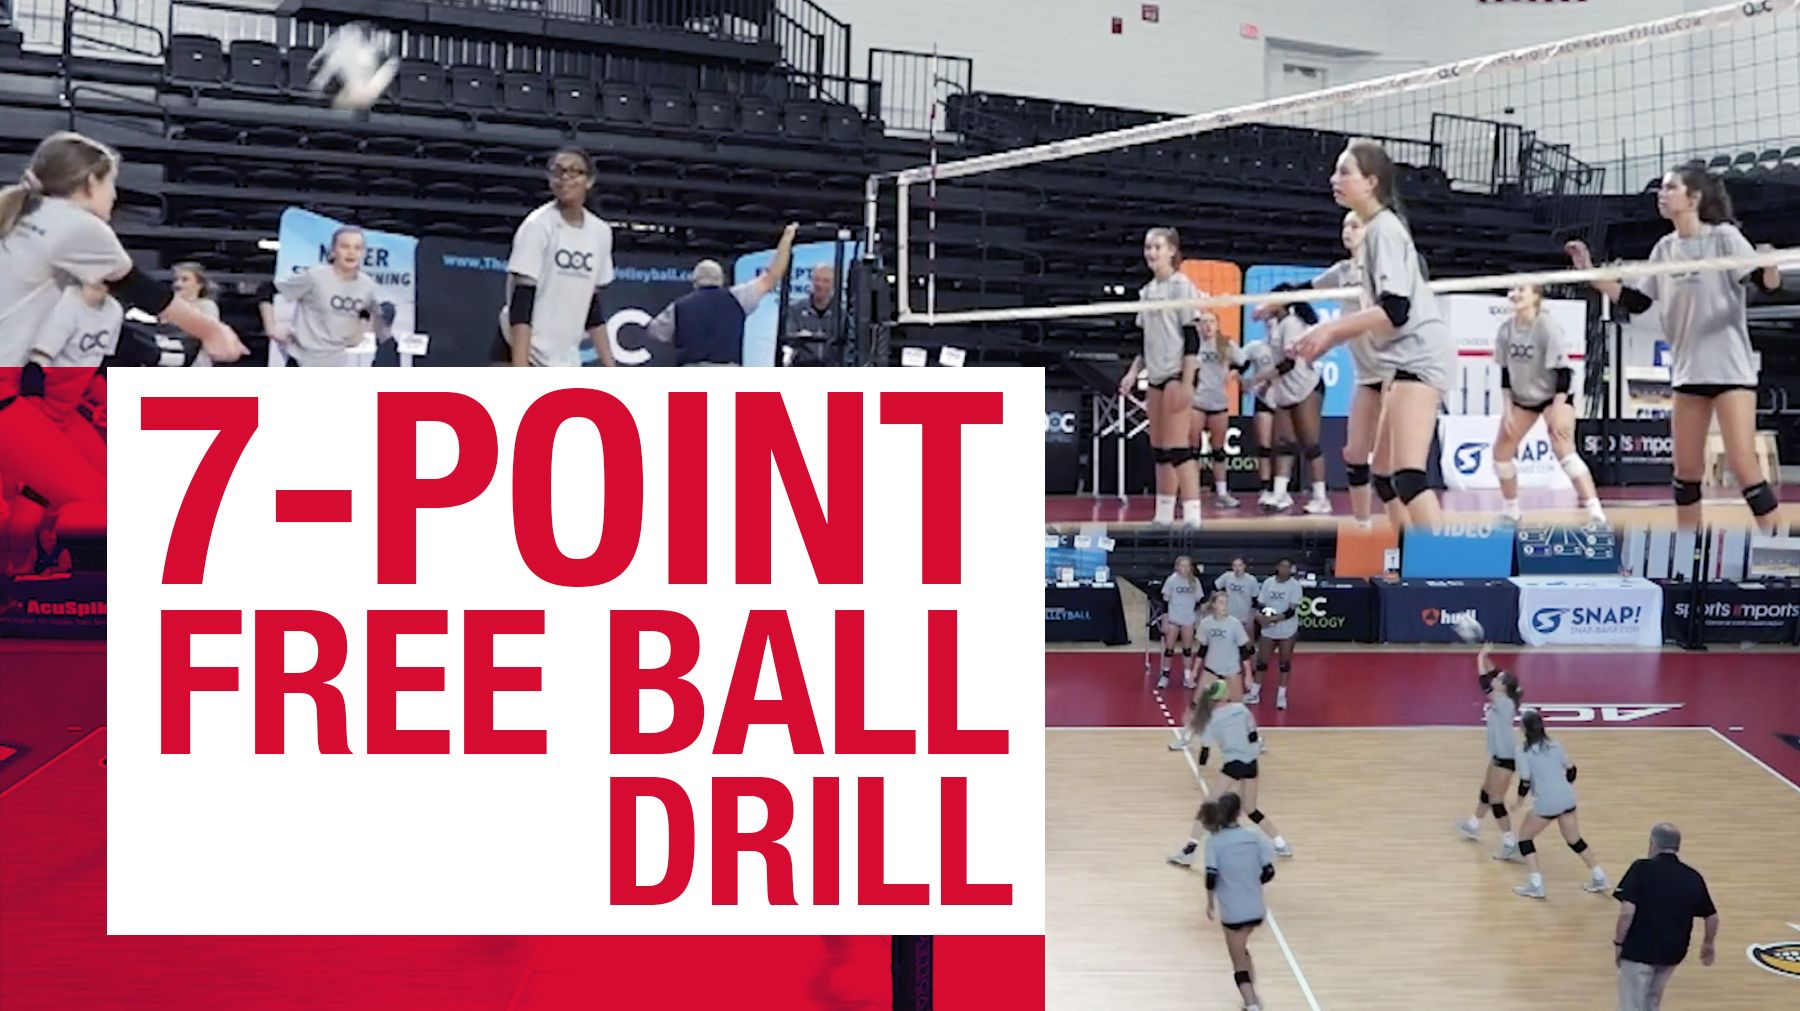 7 Point Free Ball Drill Coaching Volleyball Volleyball Drills Volleyball Skills